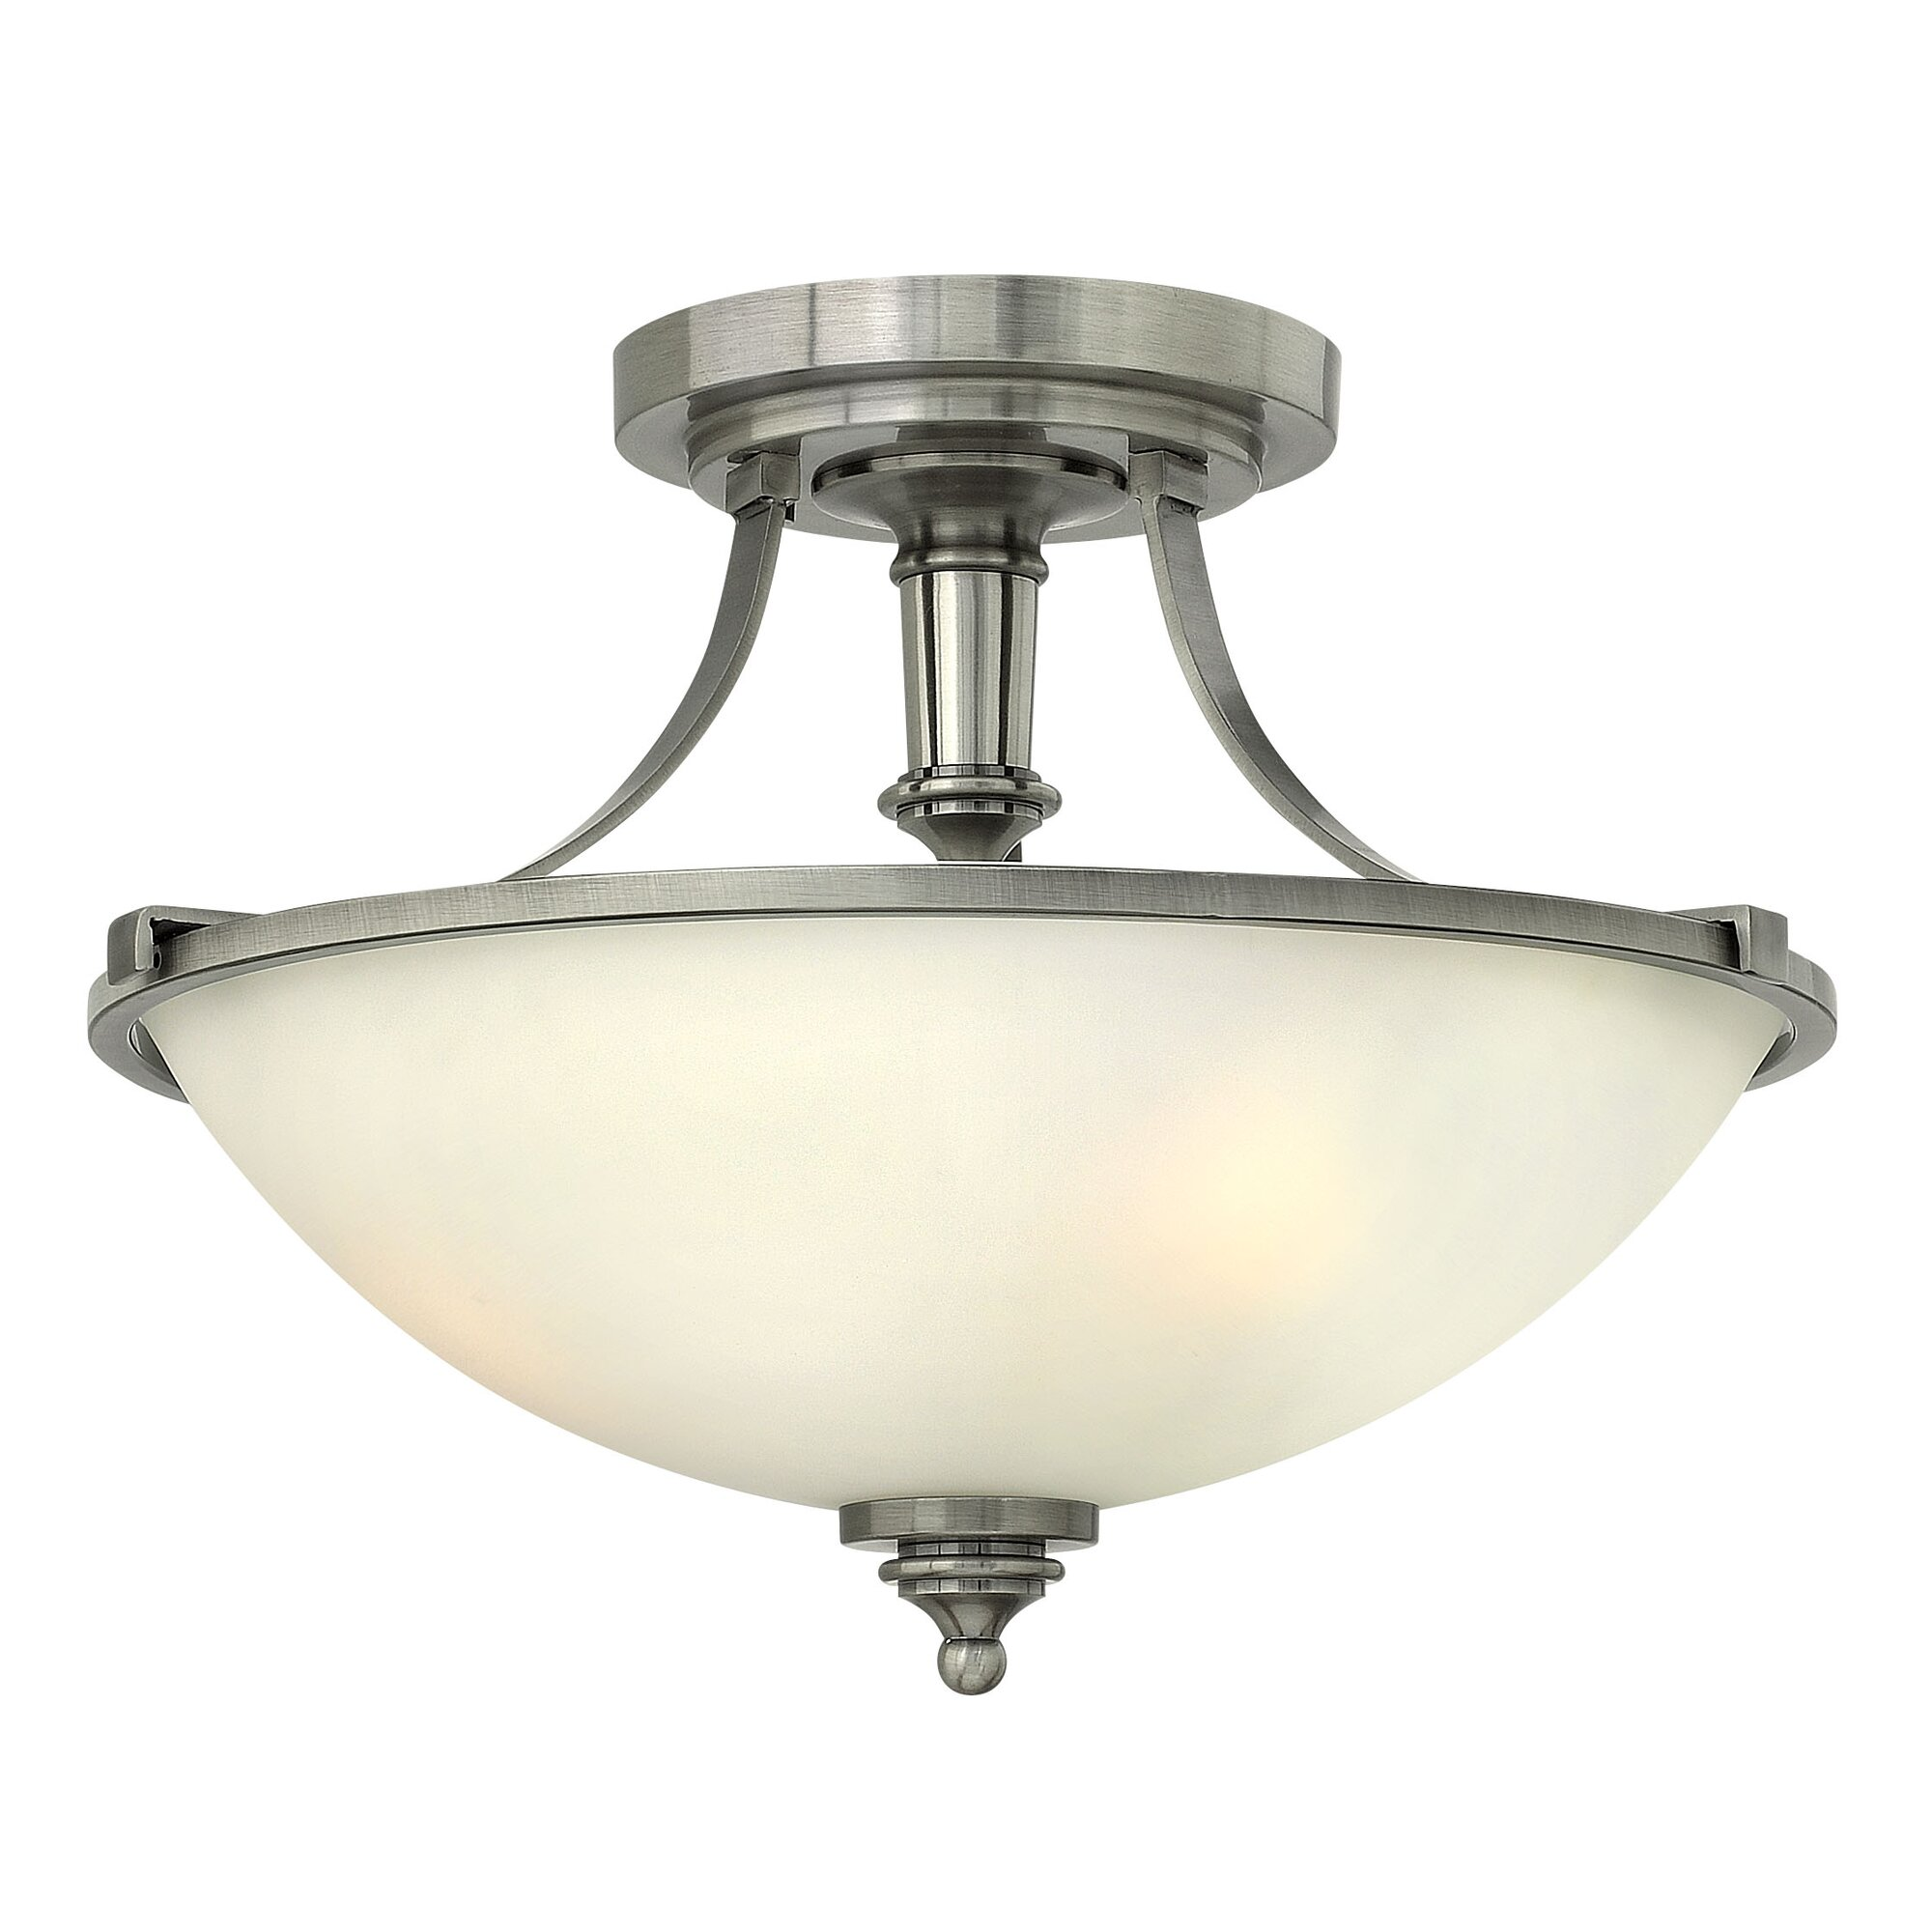 Foyer Semi Flush Mount Lighting : Hinkley lighting truman light semi flush mount foyer